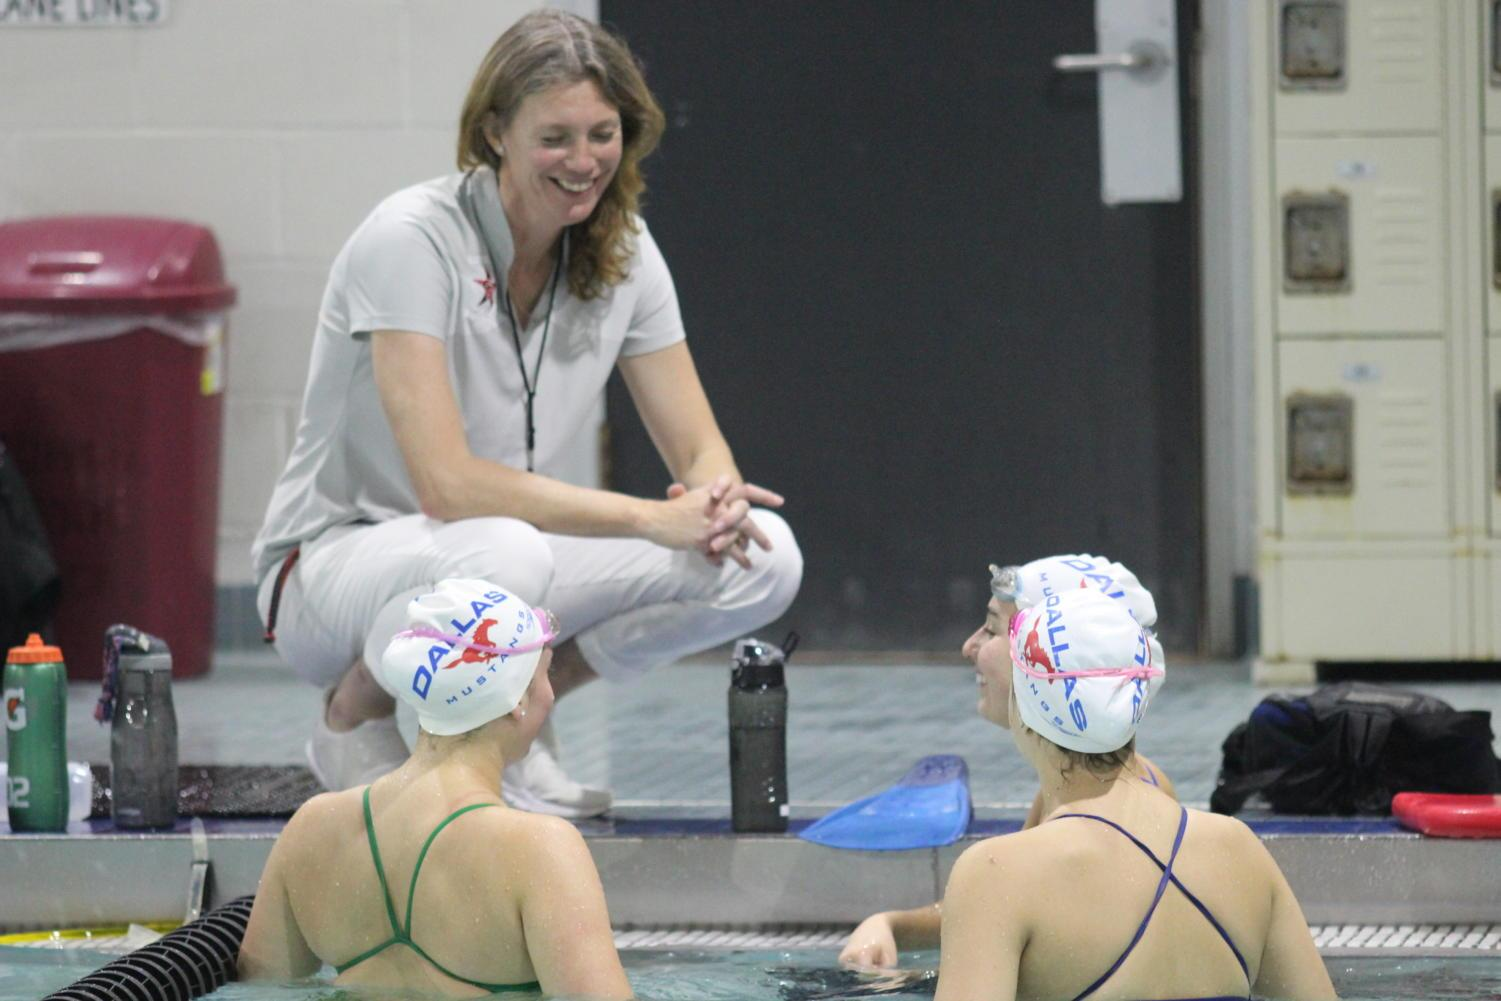 Coppell seniors Gabi Badillo, Anna Wilcox and Sophie Wilcox discuss their practice laps with Coppell swimming coach  Marieke Roberts during swim practice on Oct. 19 at the Coppell YMCA. Roberts encourages the swimmers to continue working hard to improve their speed and persistence in the pool.